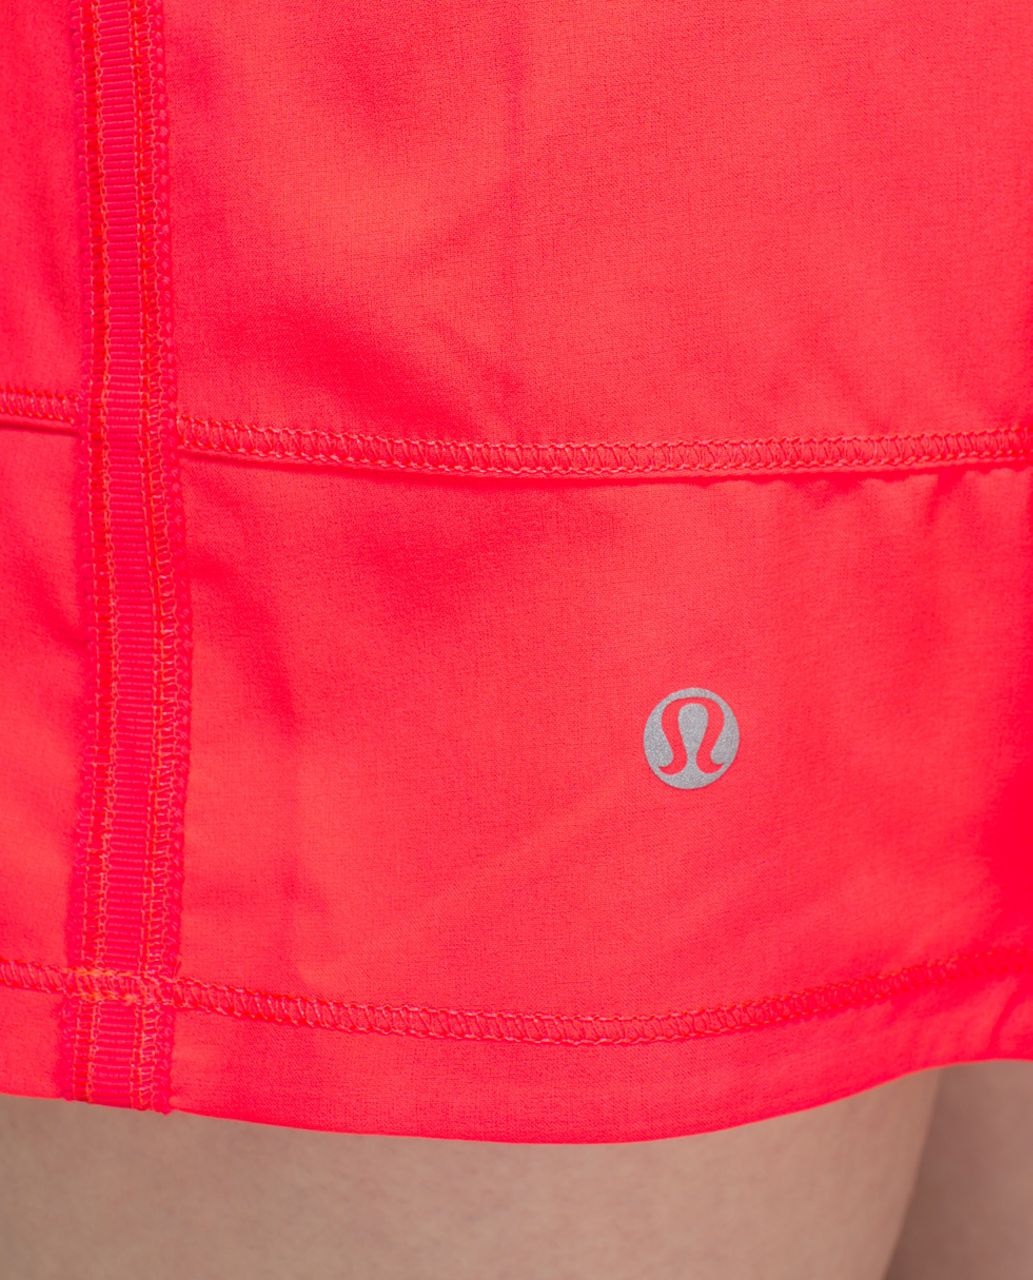 Lululemon Pace Rival Skirt II *4-way Stretch (Regular) - Electric Coral / Quiet Stripe Butter Pink Electric Coral